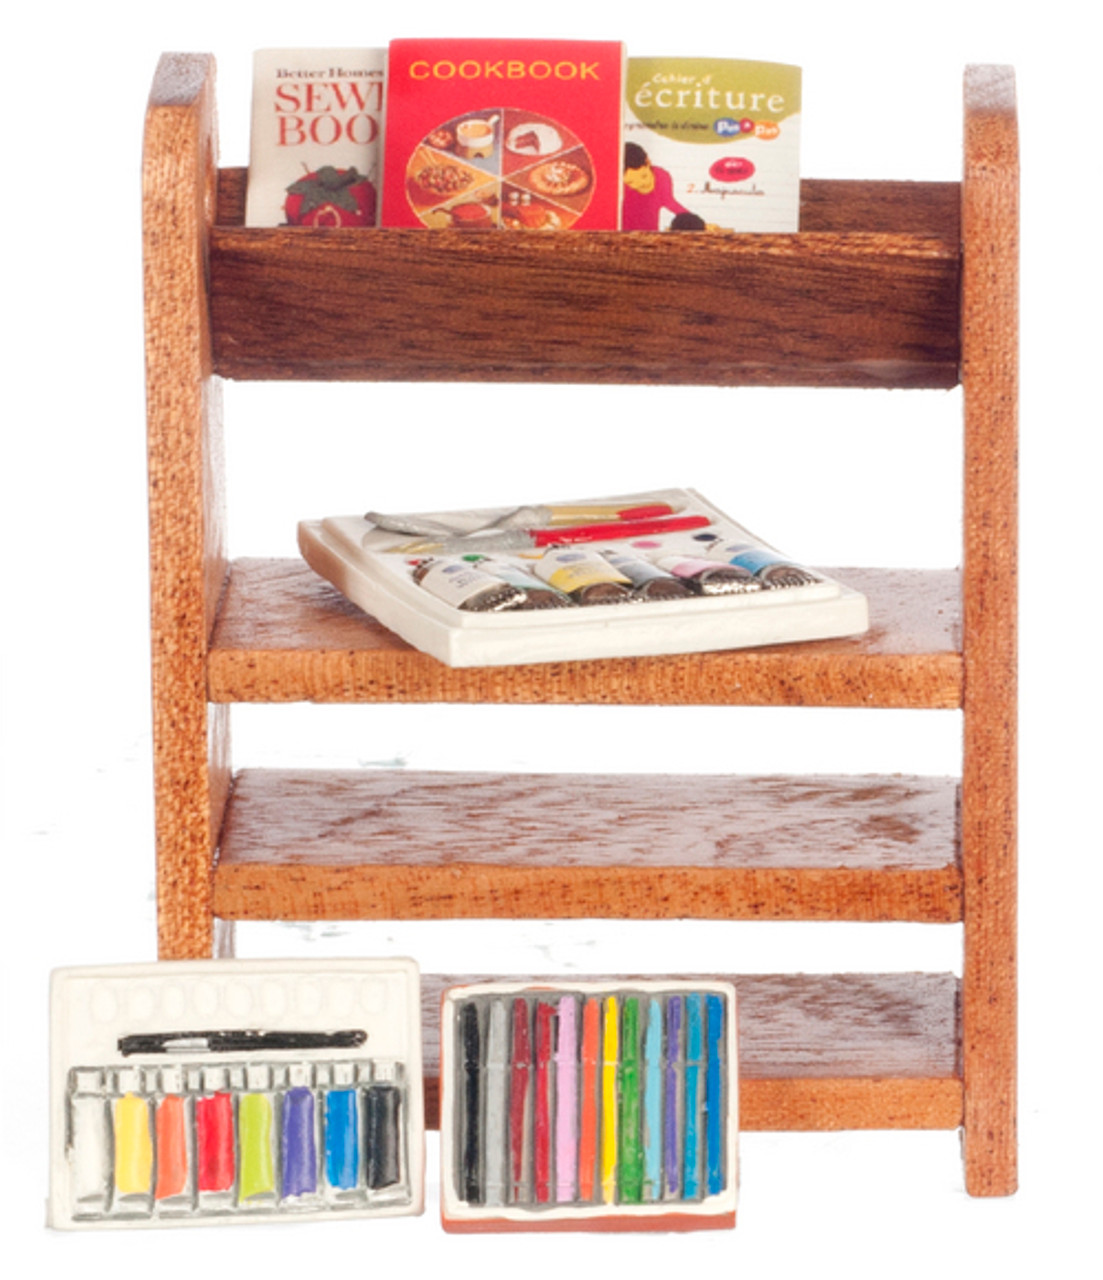 Small Bookshelf with Books and Paint Set